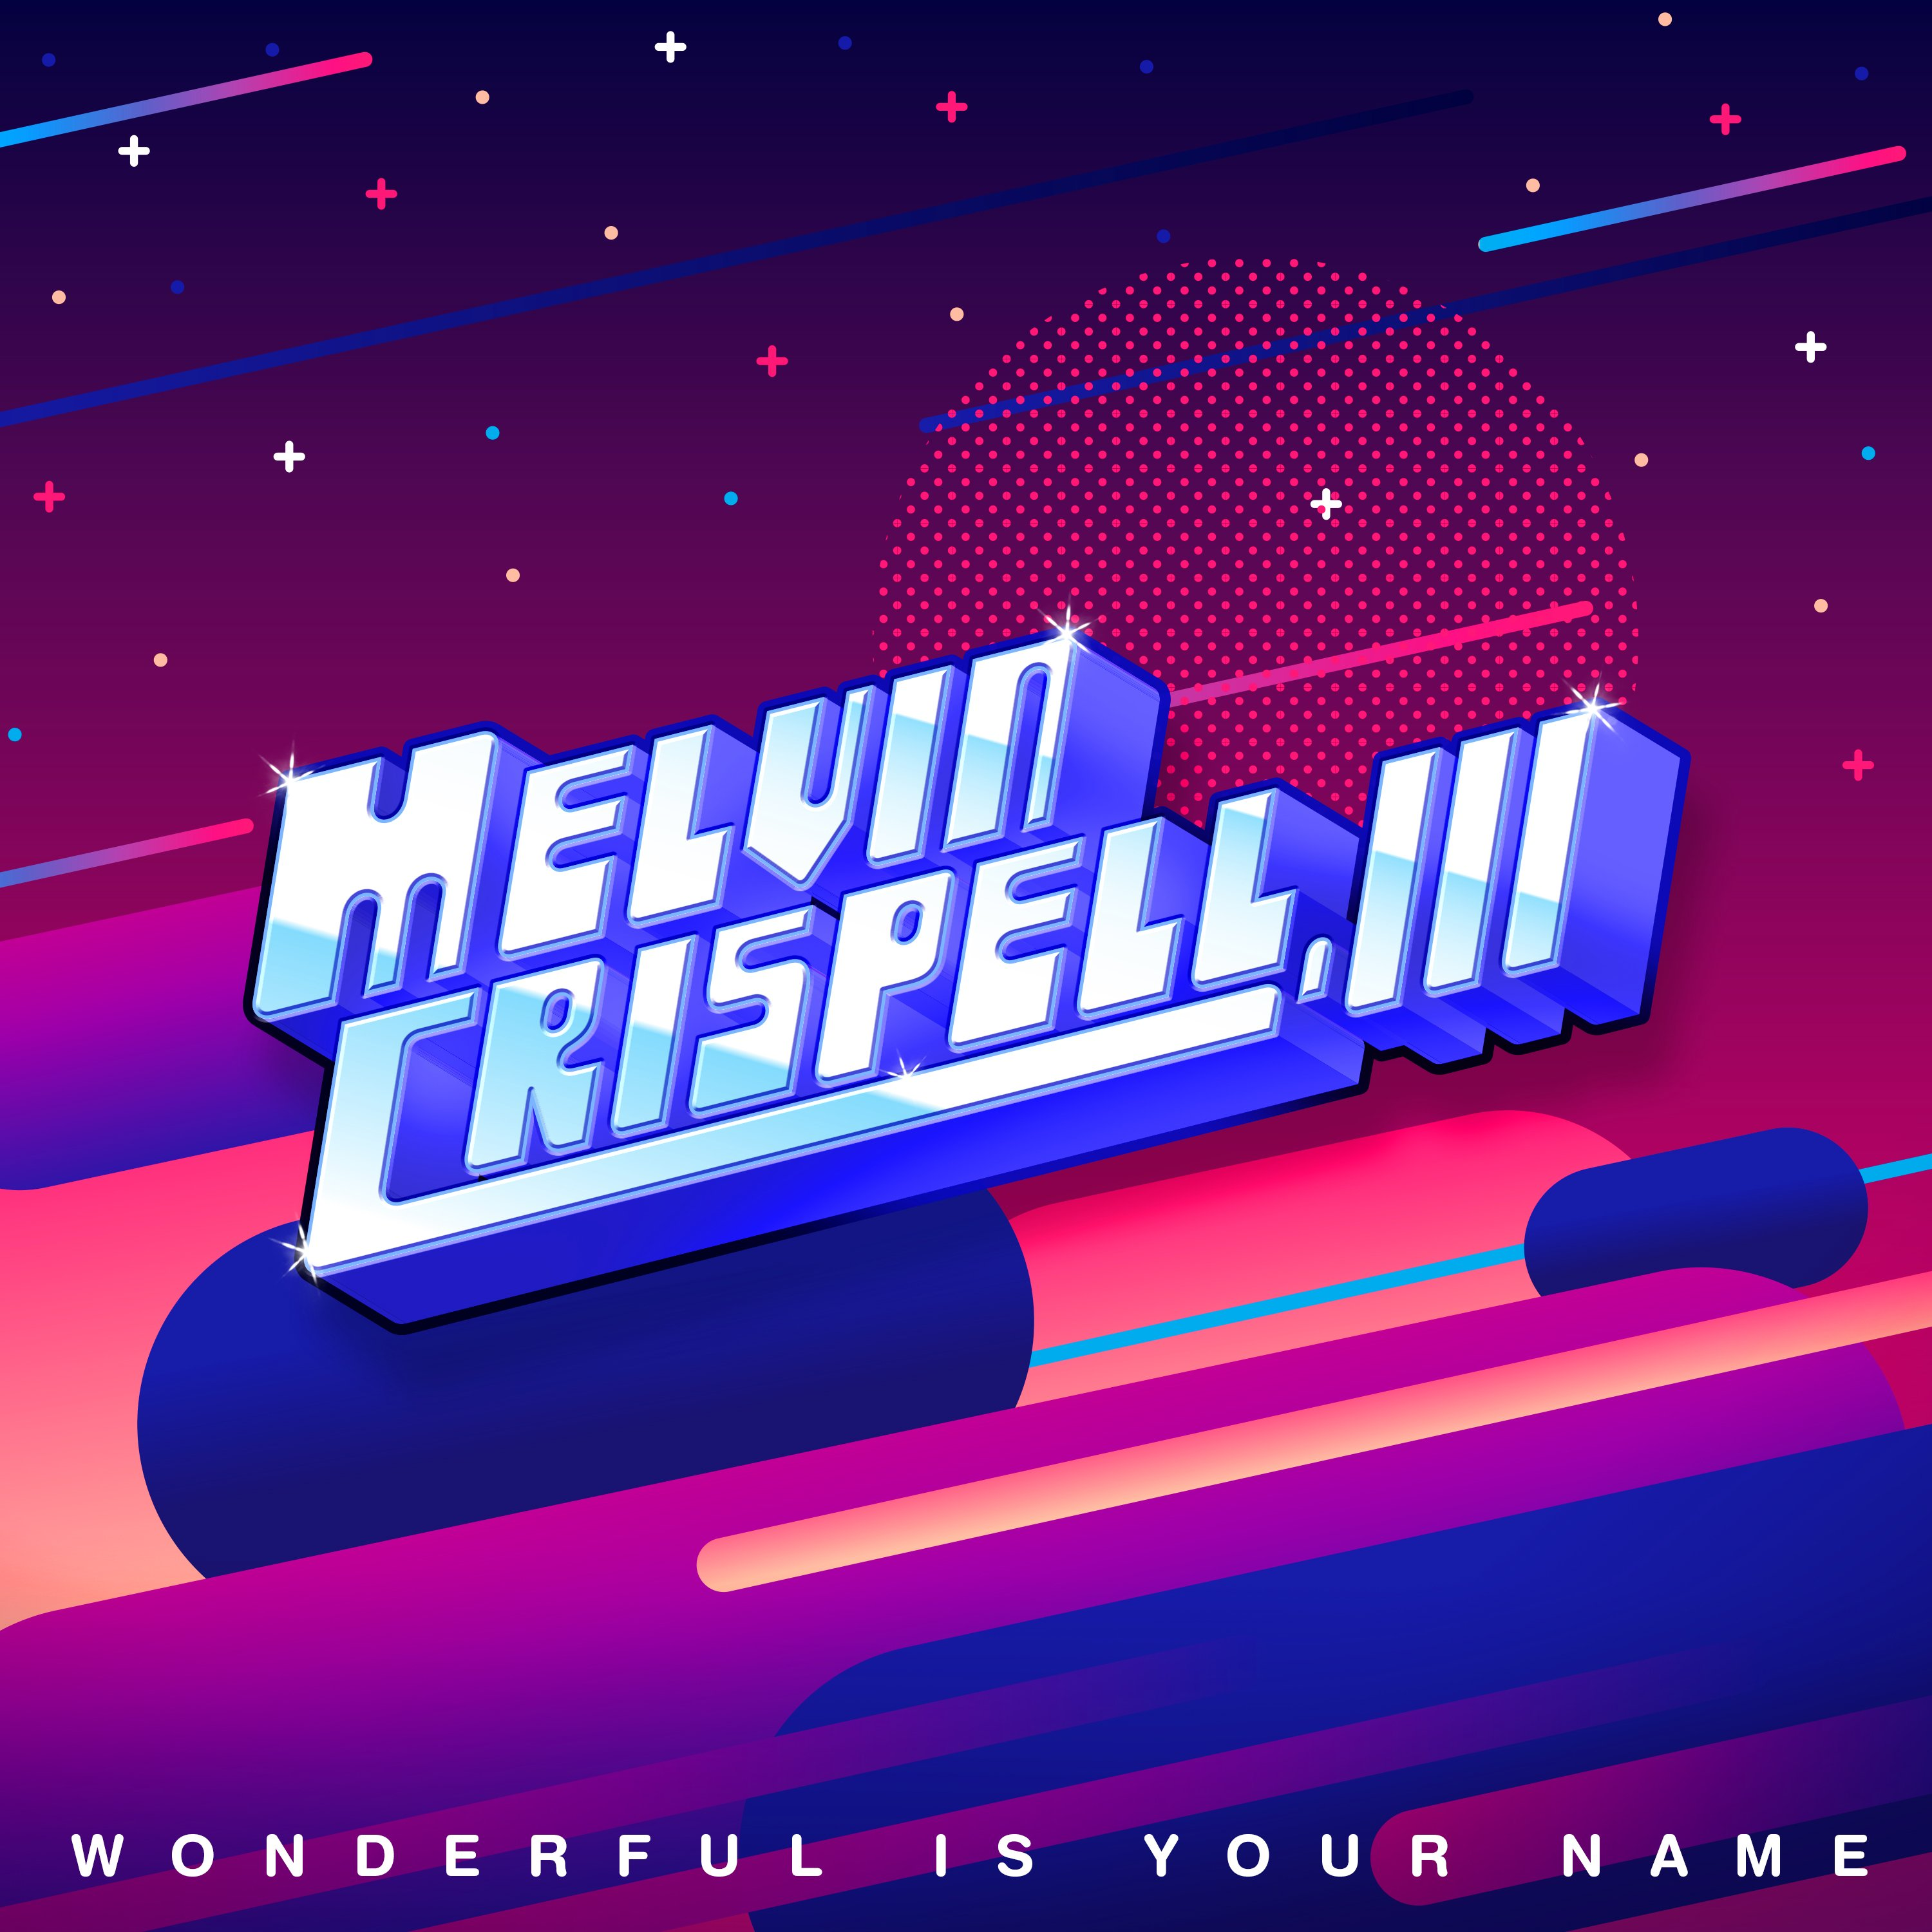 Wonderful Is Your Name